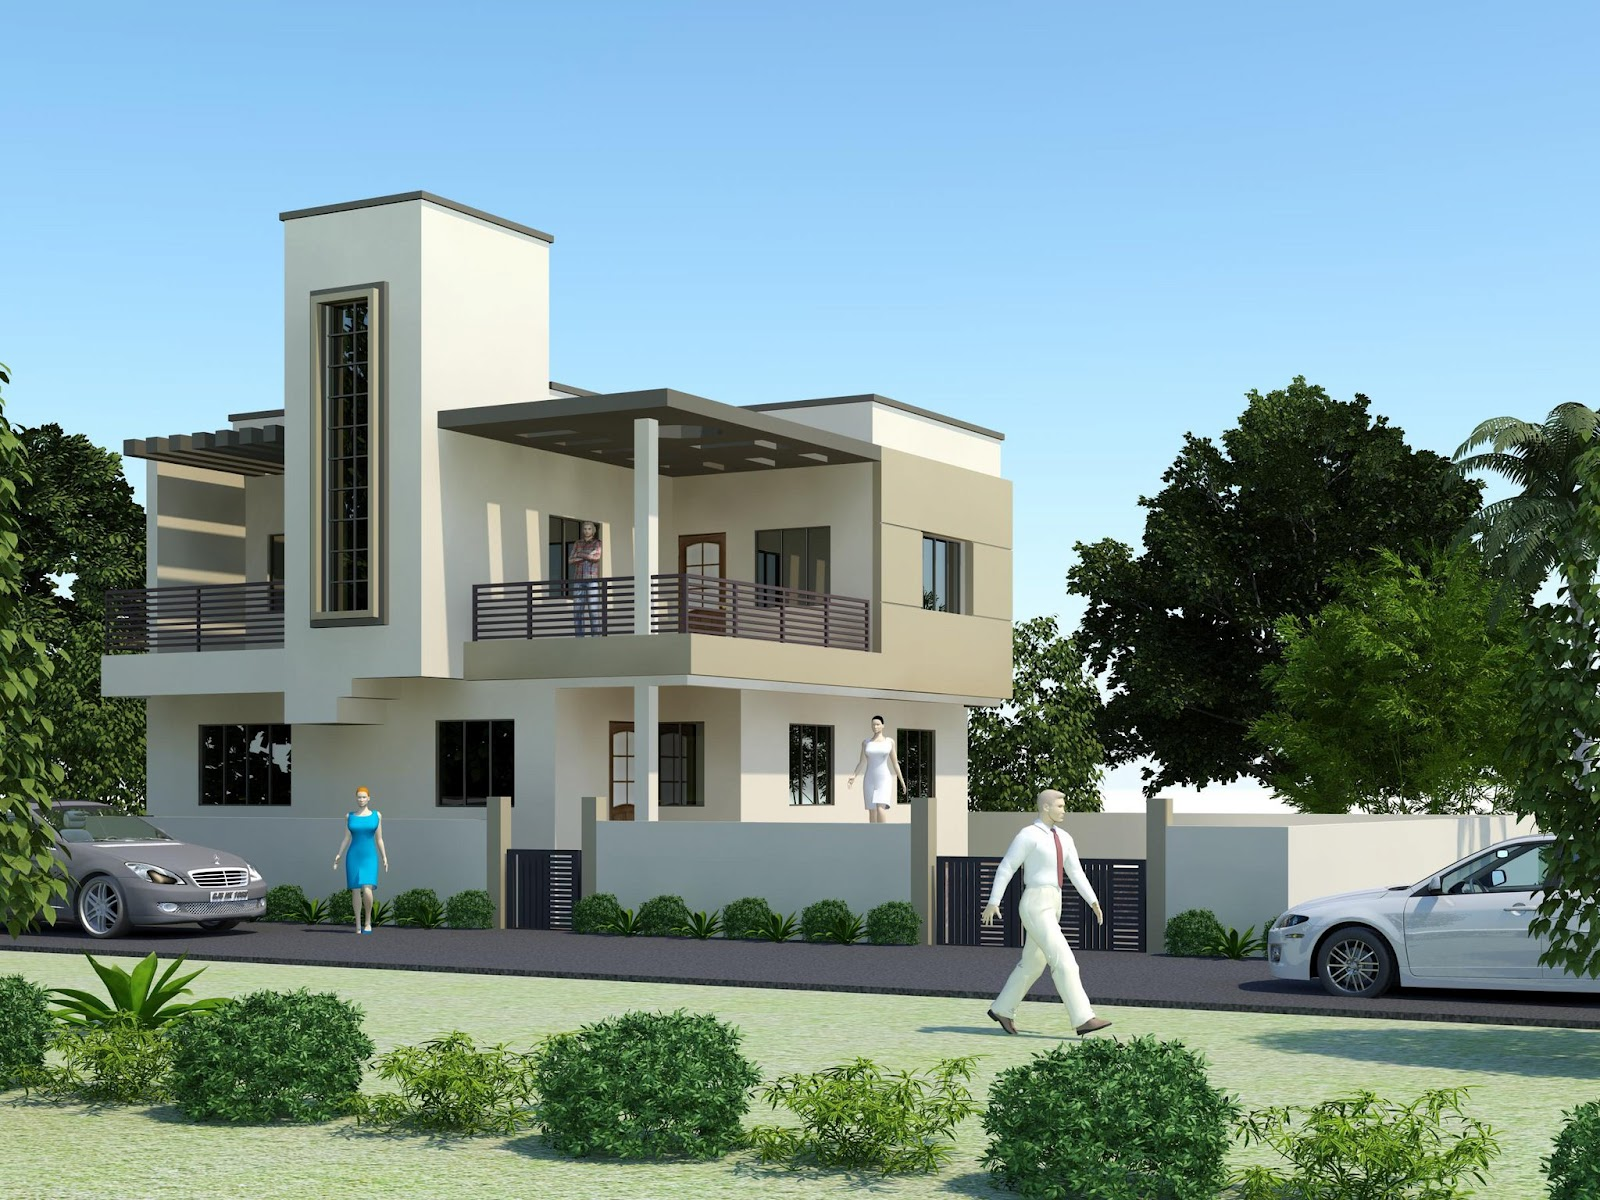 New home designs latest modern homes exterior designs for Outside design for home